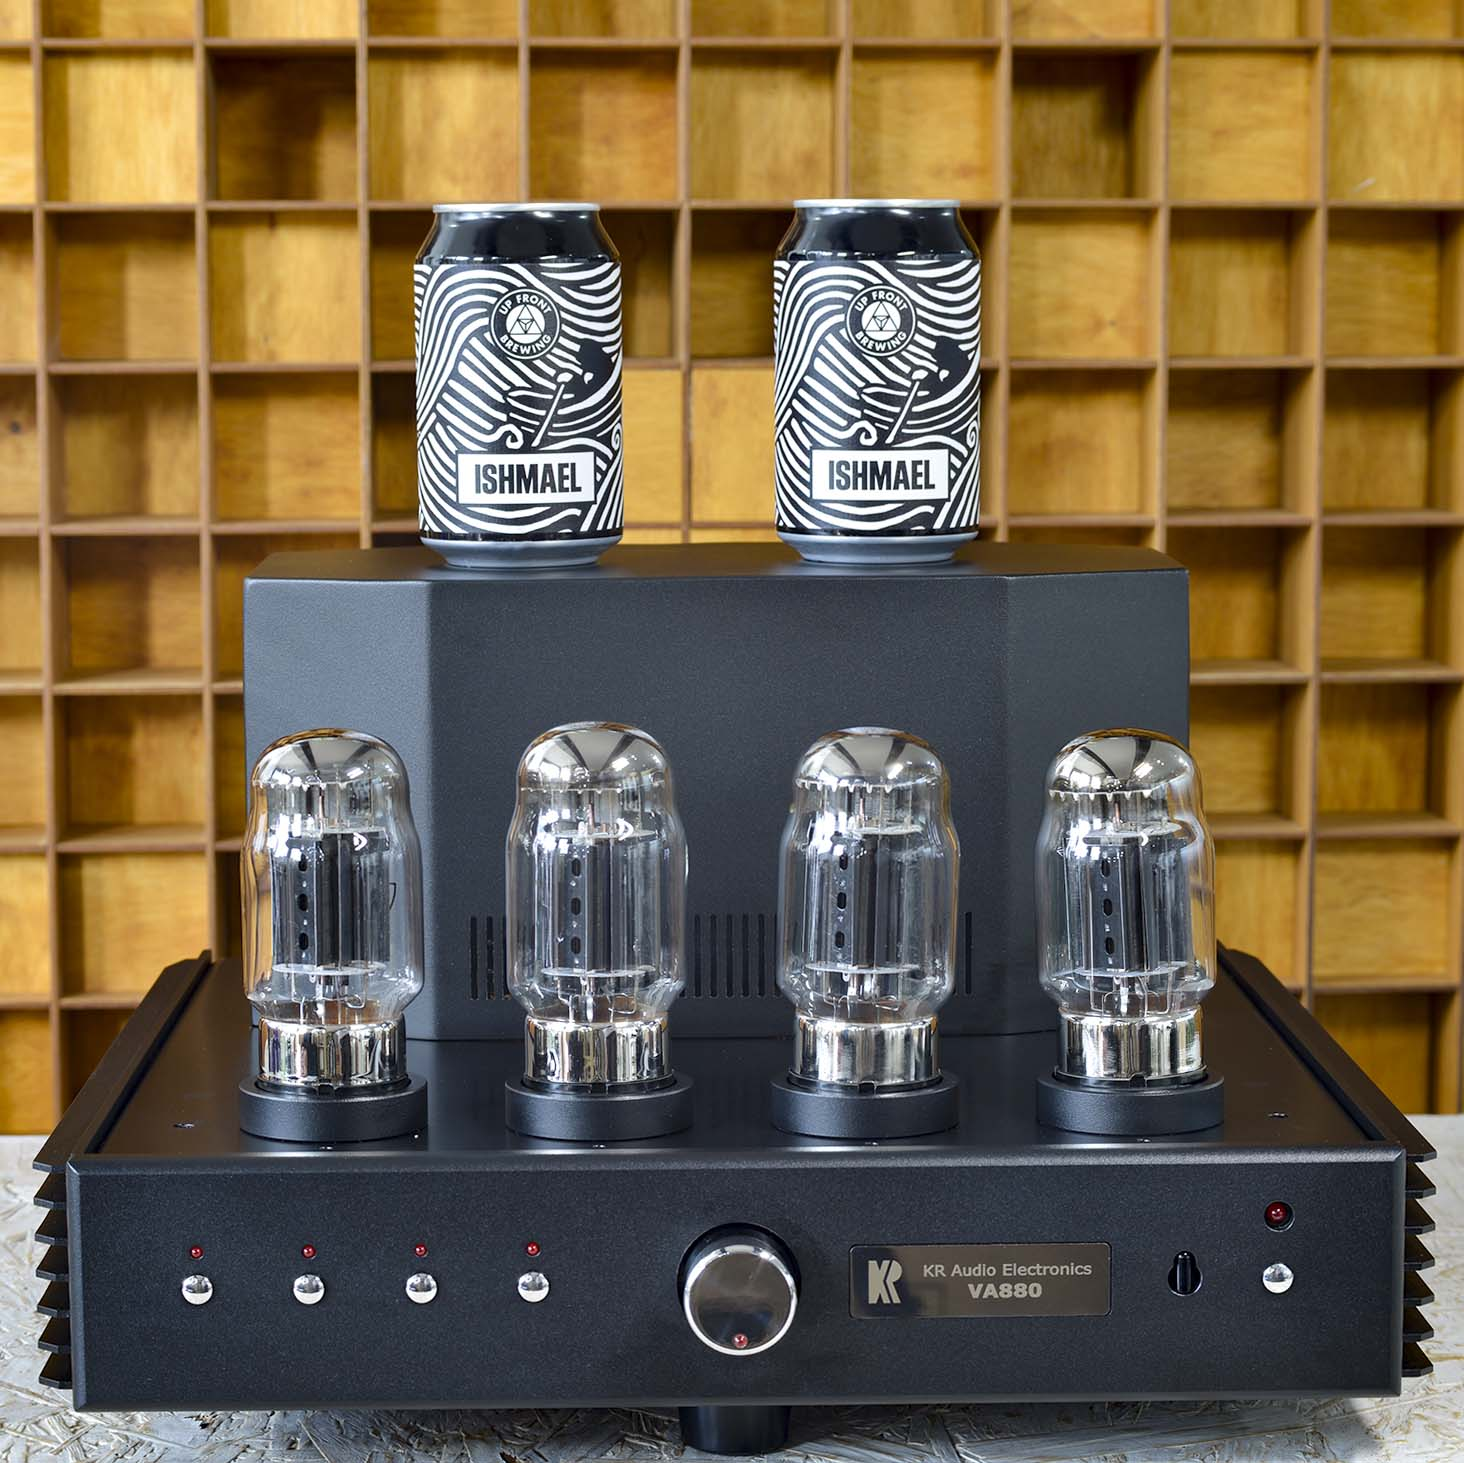 kr-audio-up-front-brewing-4-site.jpg